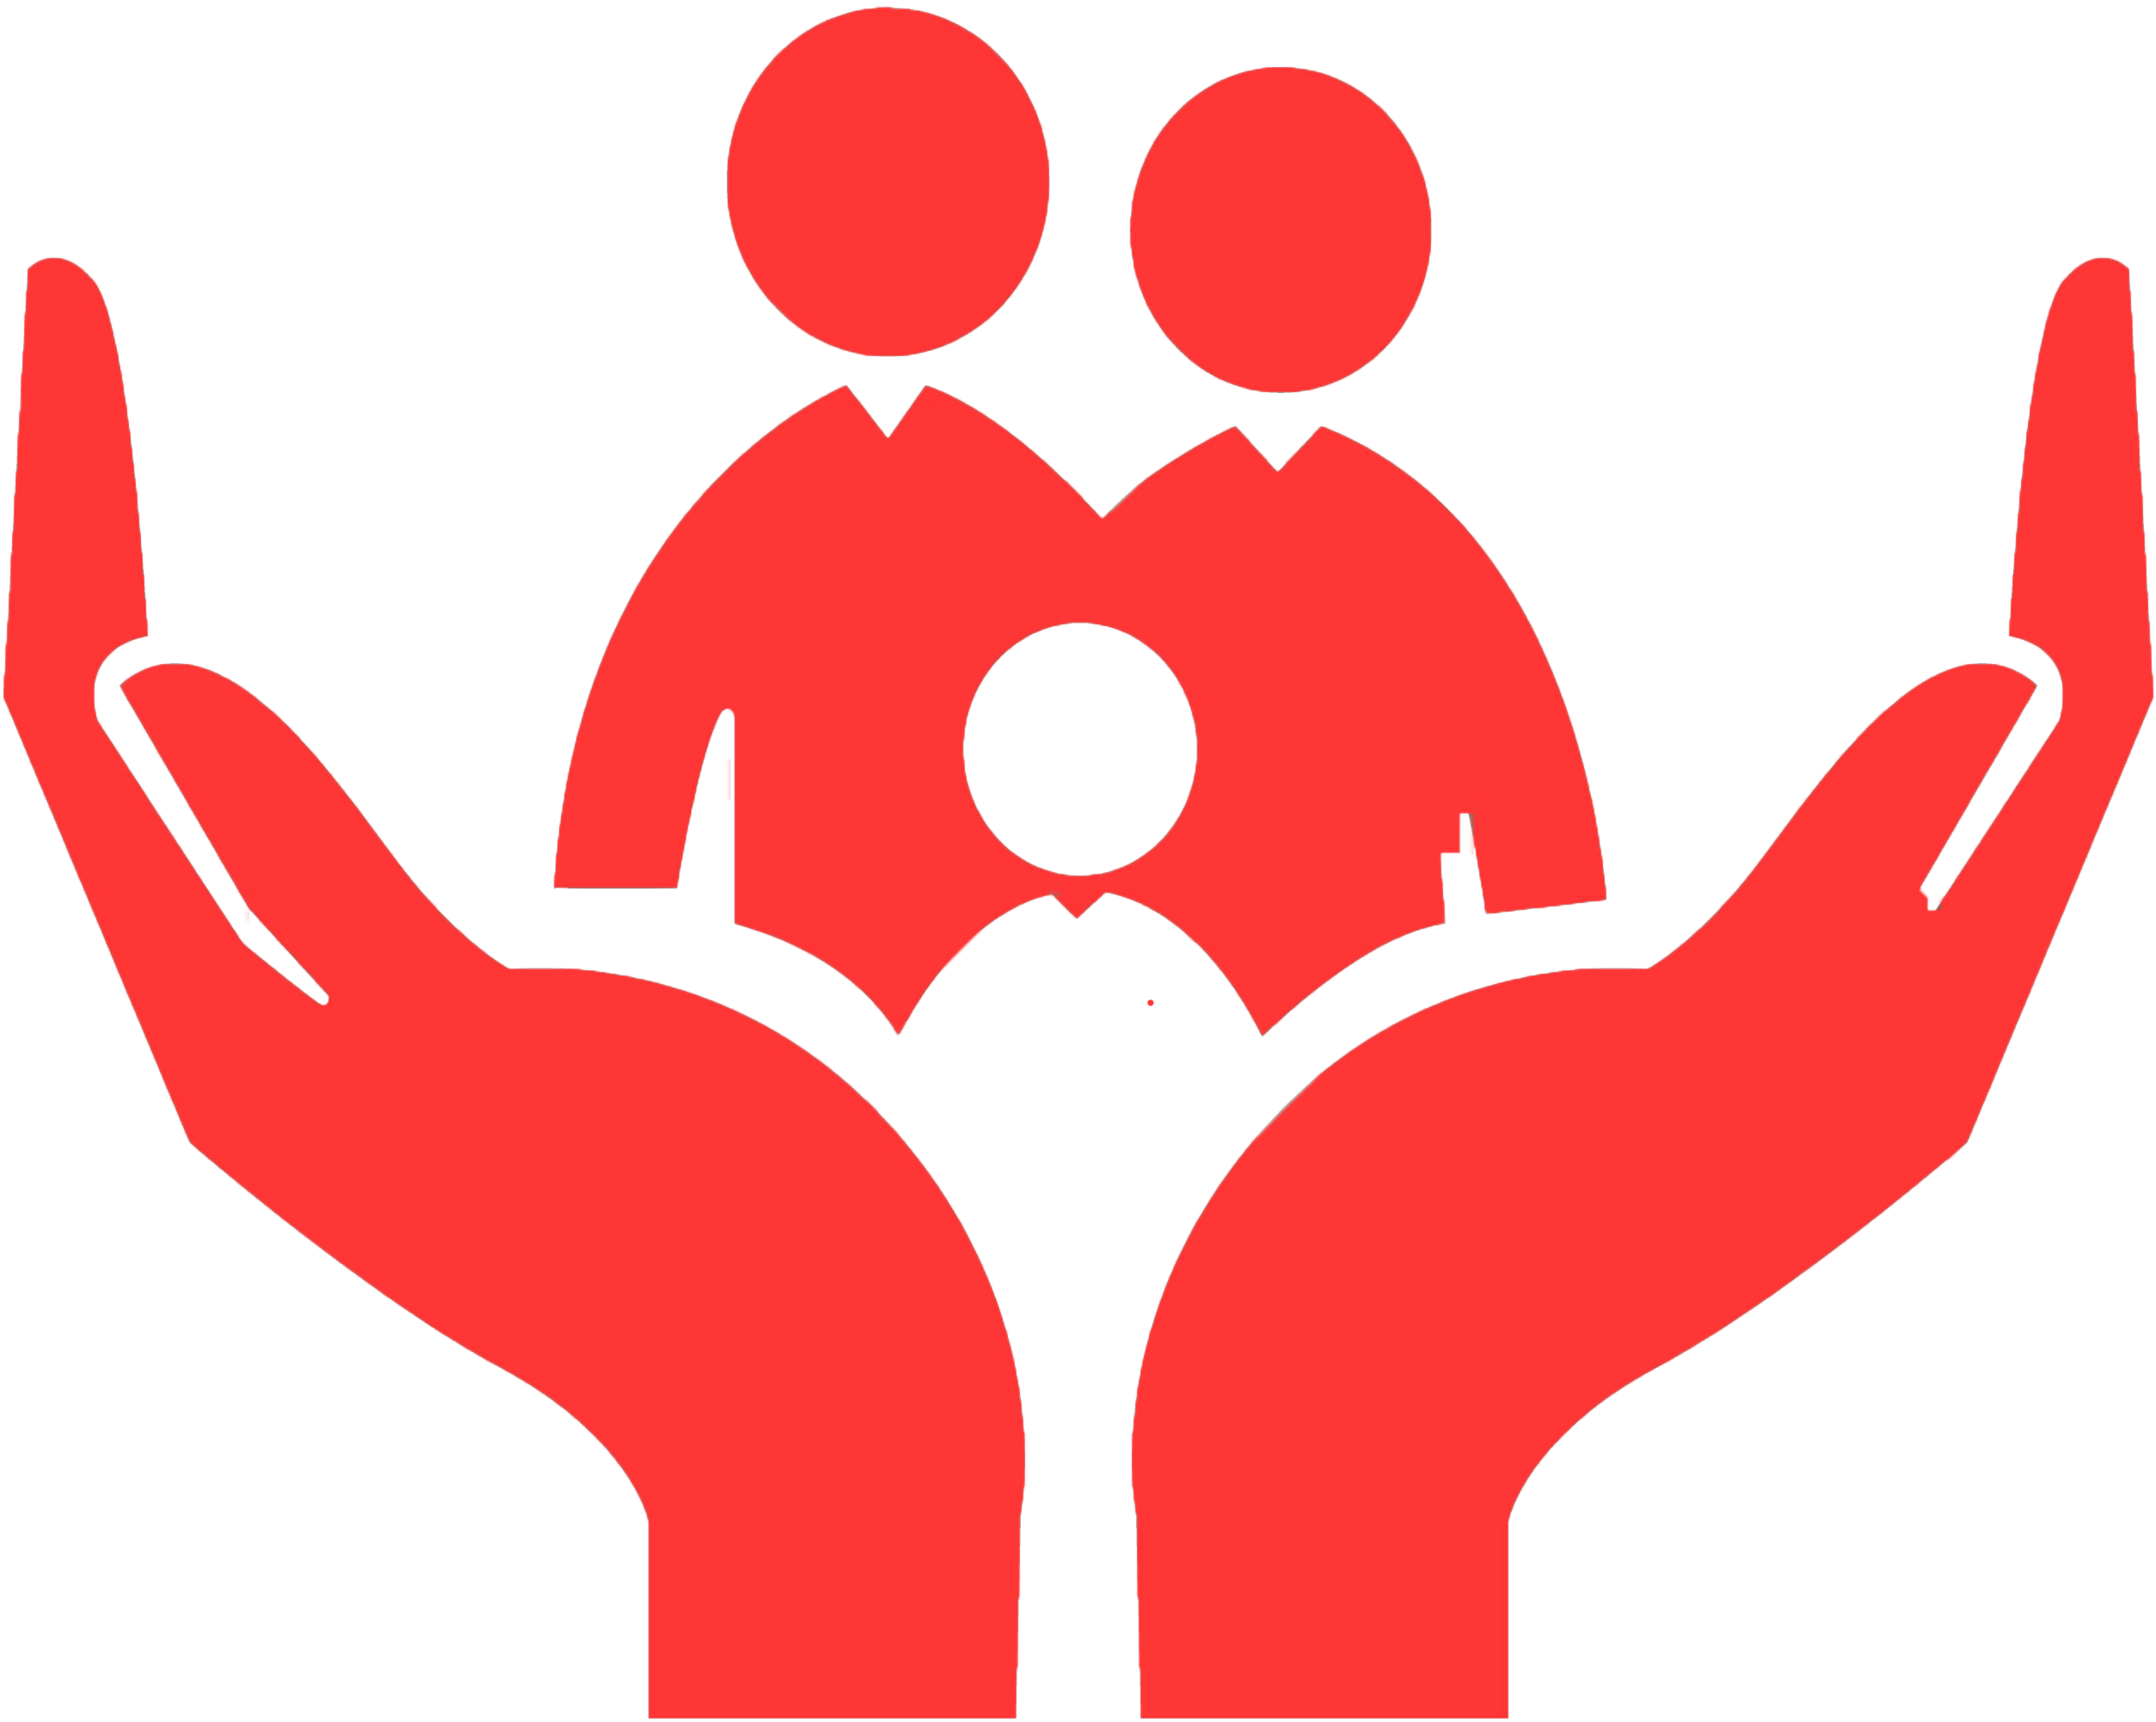 Family Law - Life Insurance Symbol Png Clipart - Full Size ...